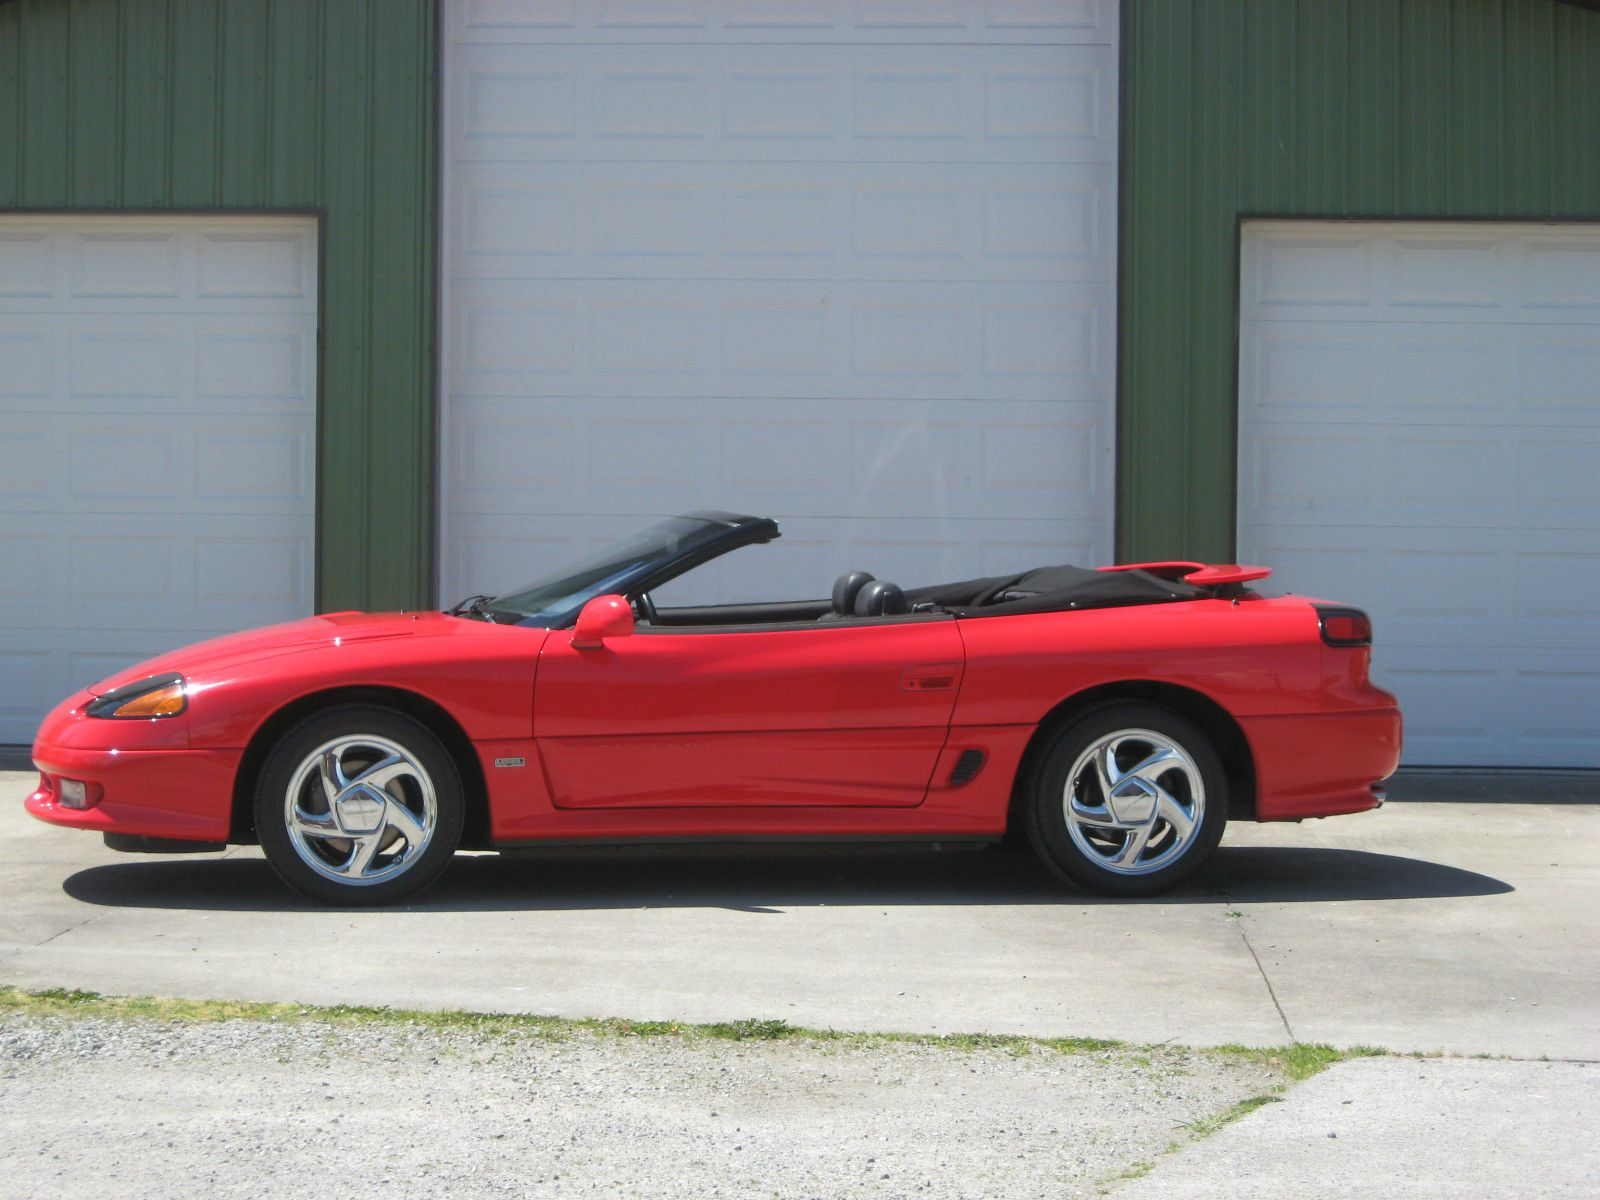 1991 dodge stealth rt tt straman convertible precursor to the mitsubishi 3000gt vr4 spyder